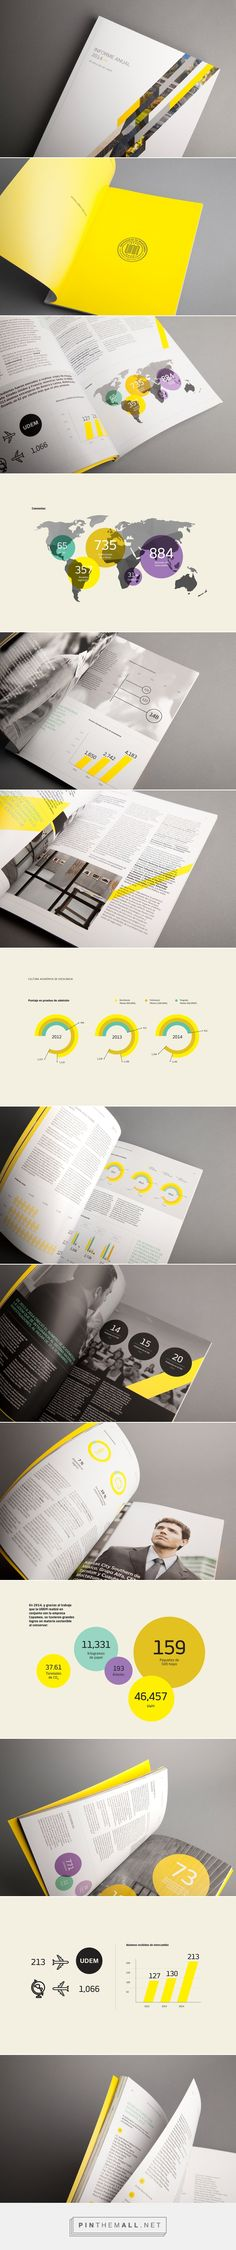 UDEM Anual Report on Behance - created via http://pinthemall.net